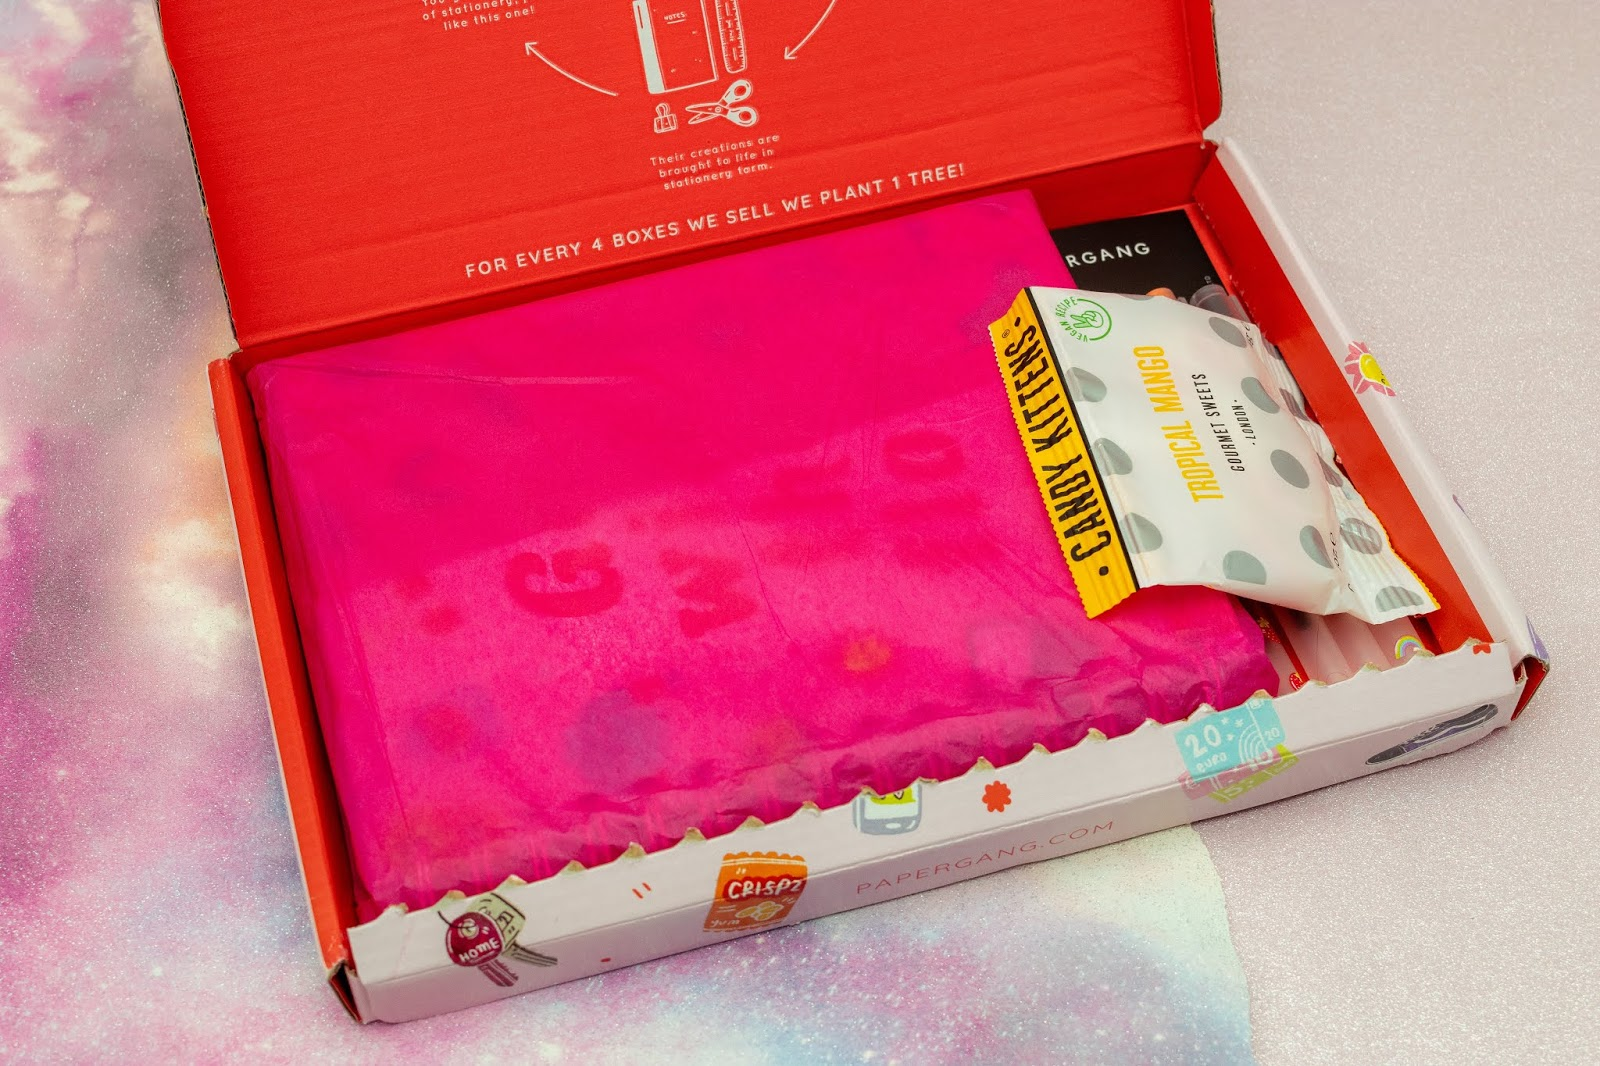 A letterbox sized pink box opened up with hot pink tissue paper and a packet of sweets on the side.